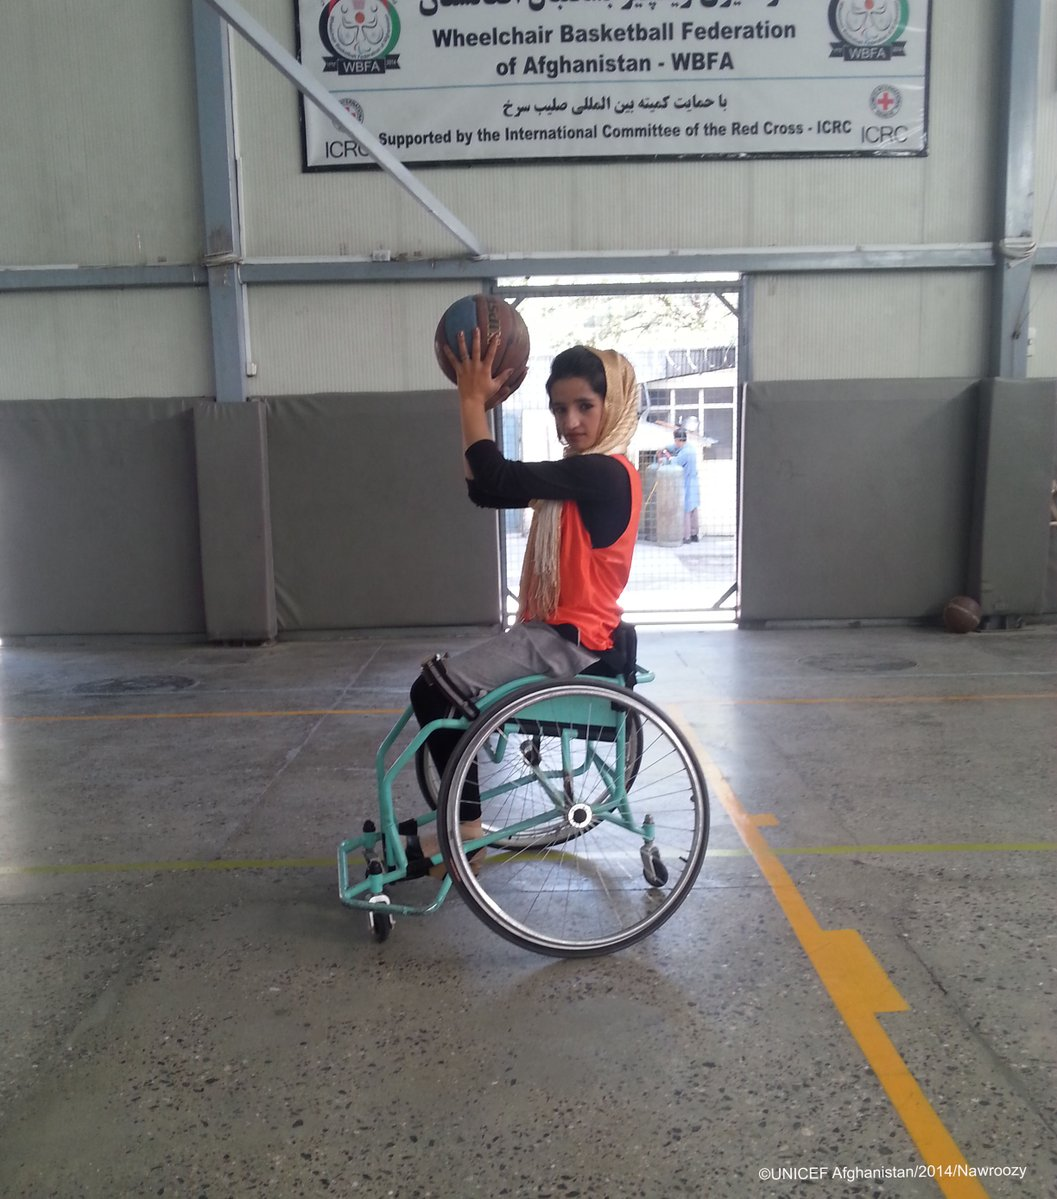 #Disability is both a cause and consequence of poverty and violence. It often prevents children from going to school and contributing to society, but with the right support, we can make sure all children reach their full potential. #ThisAbility via @UNICEFAfg @UNICEFROSA